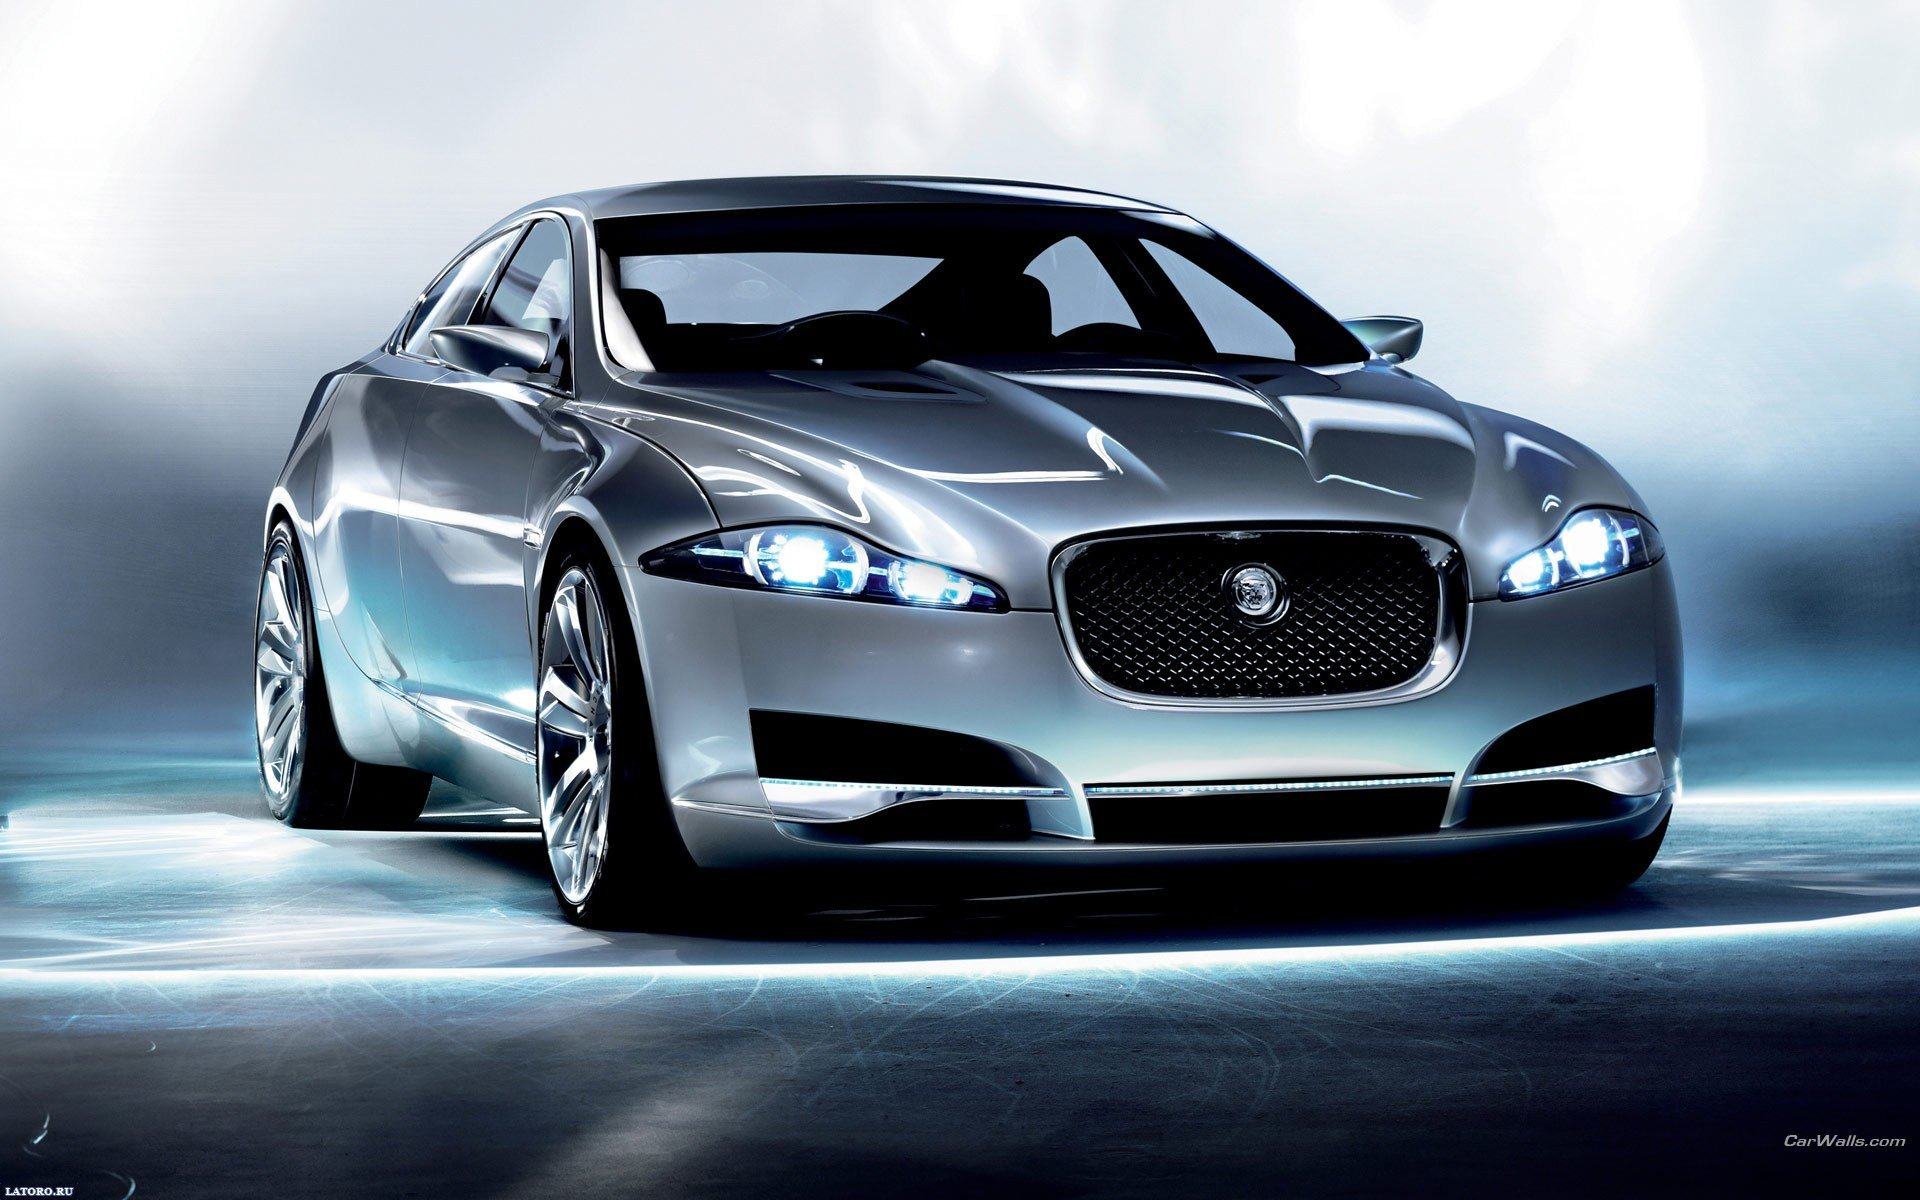 New Jaguar Cars Wallpaper 318534 On This Month